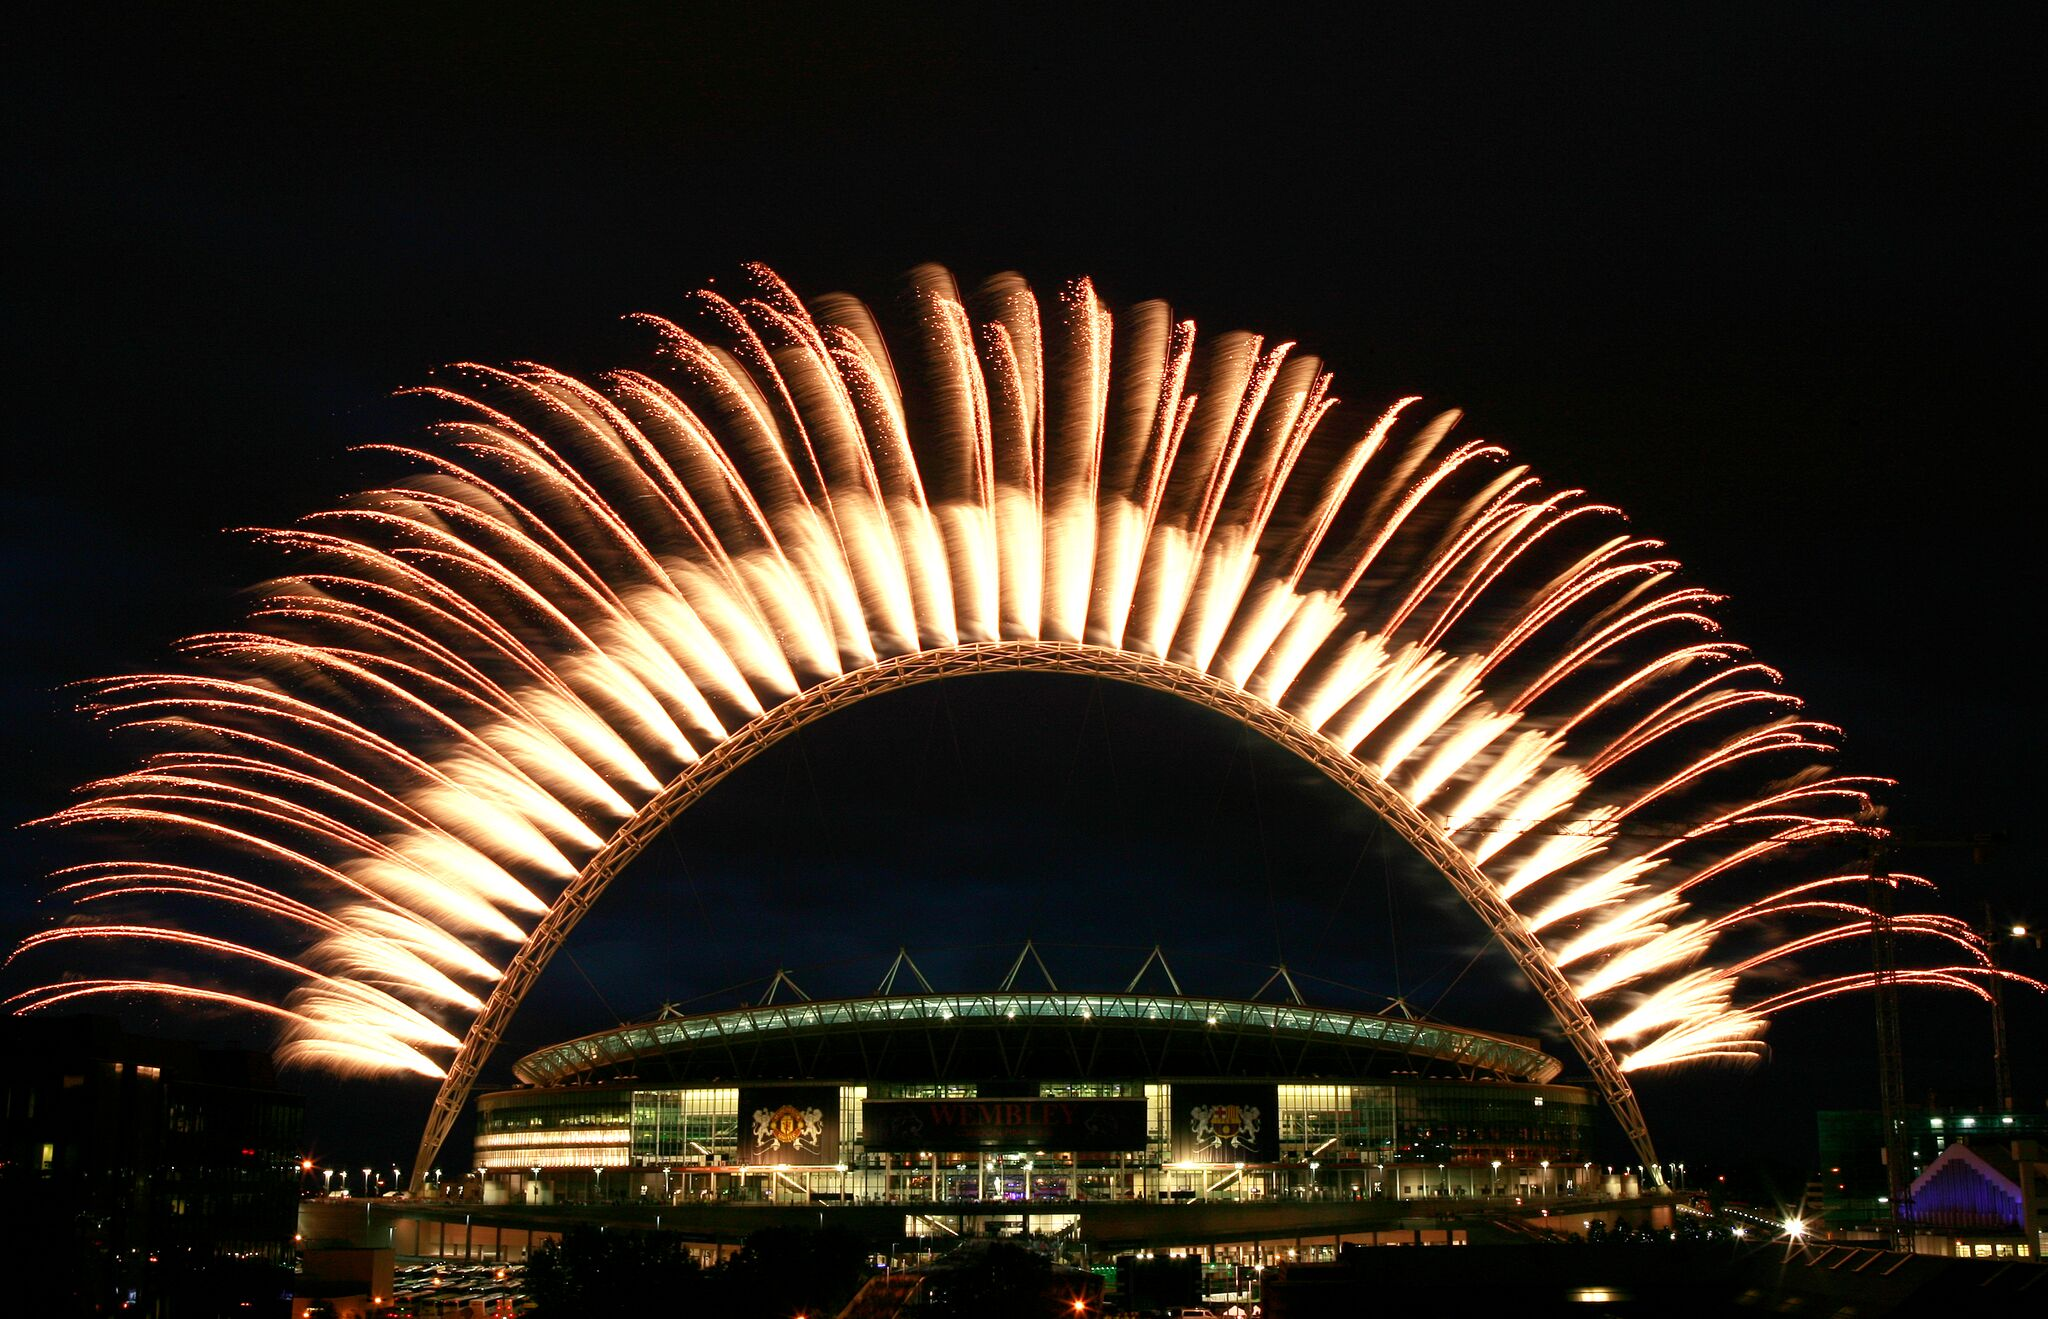 Pyrotechnics UEFA Champions League Final Wembley Stadium Arch Pyro Fireworks